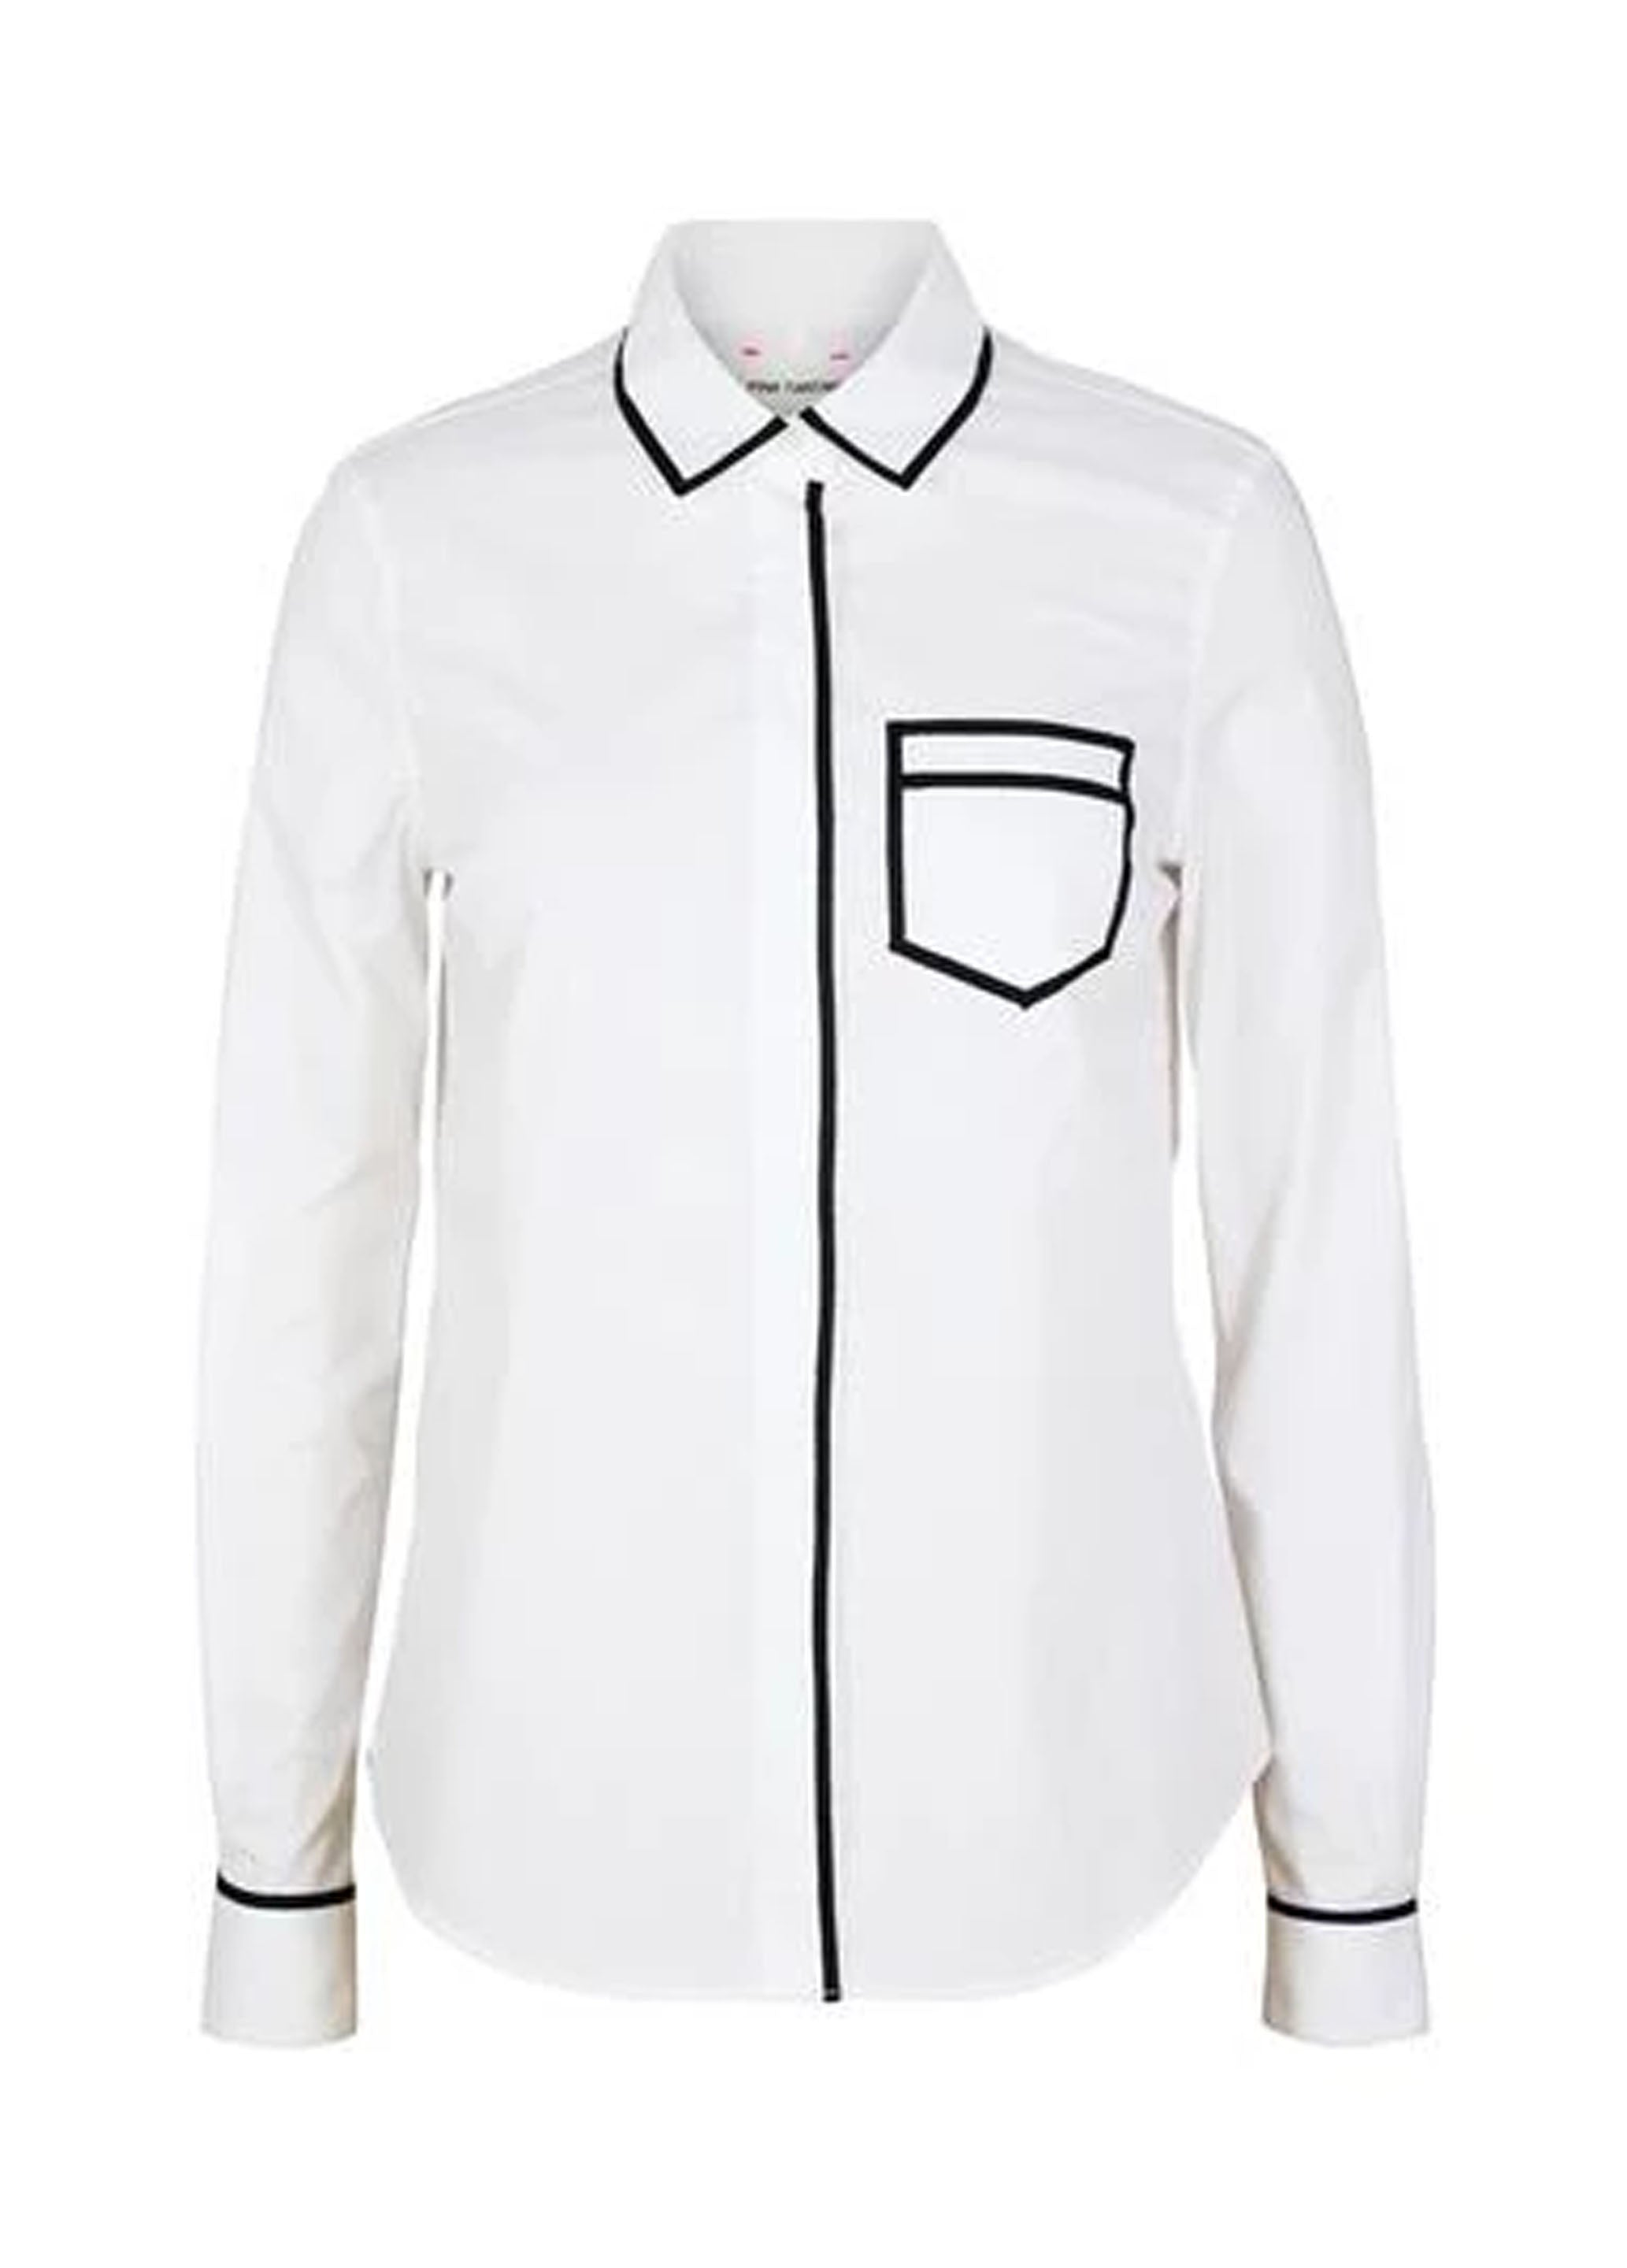 Pique Trompe L'oeil Shirt - White/Black